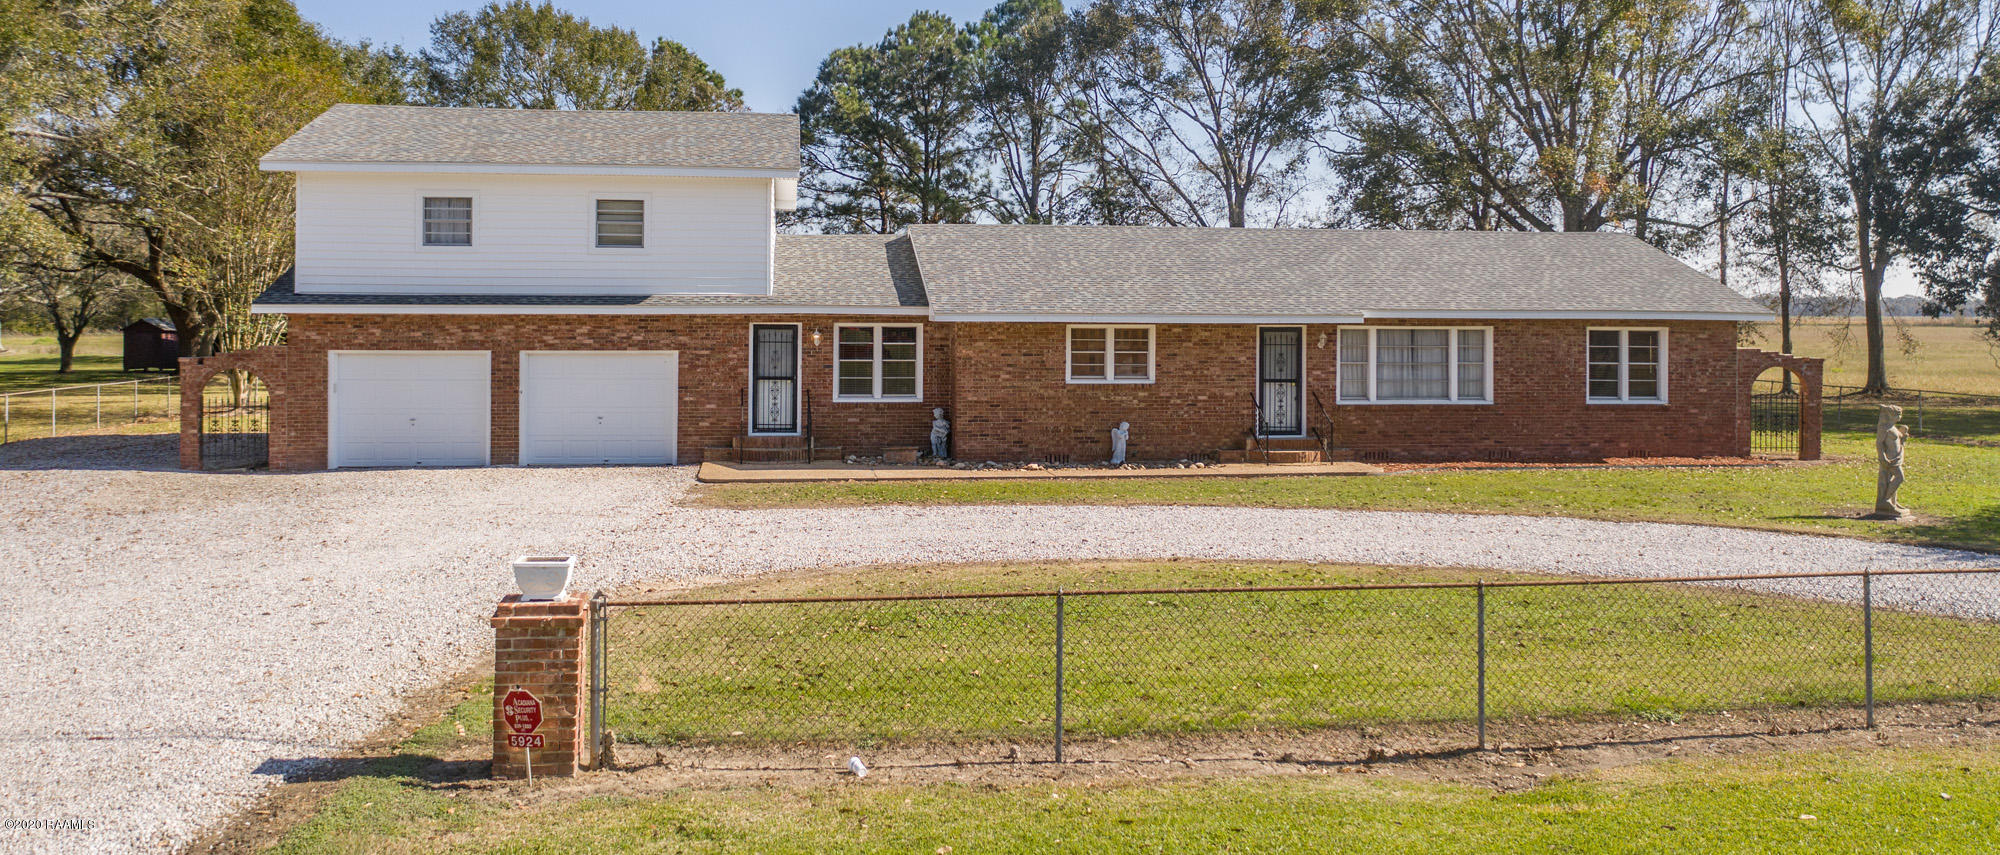 5924 Church Point Hwy, Branch, LA 70516